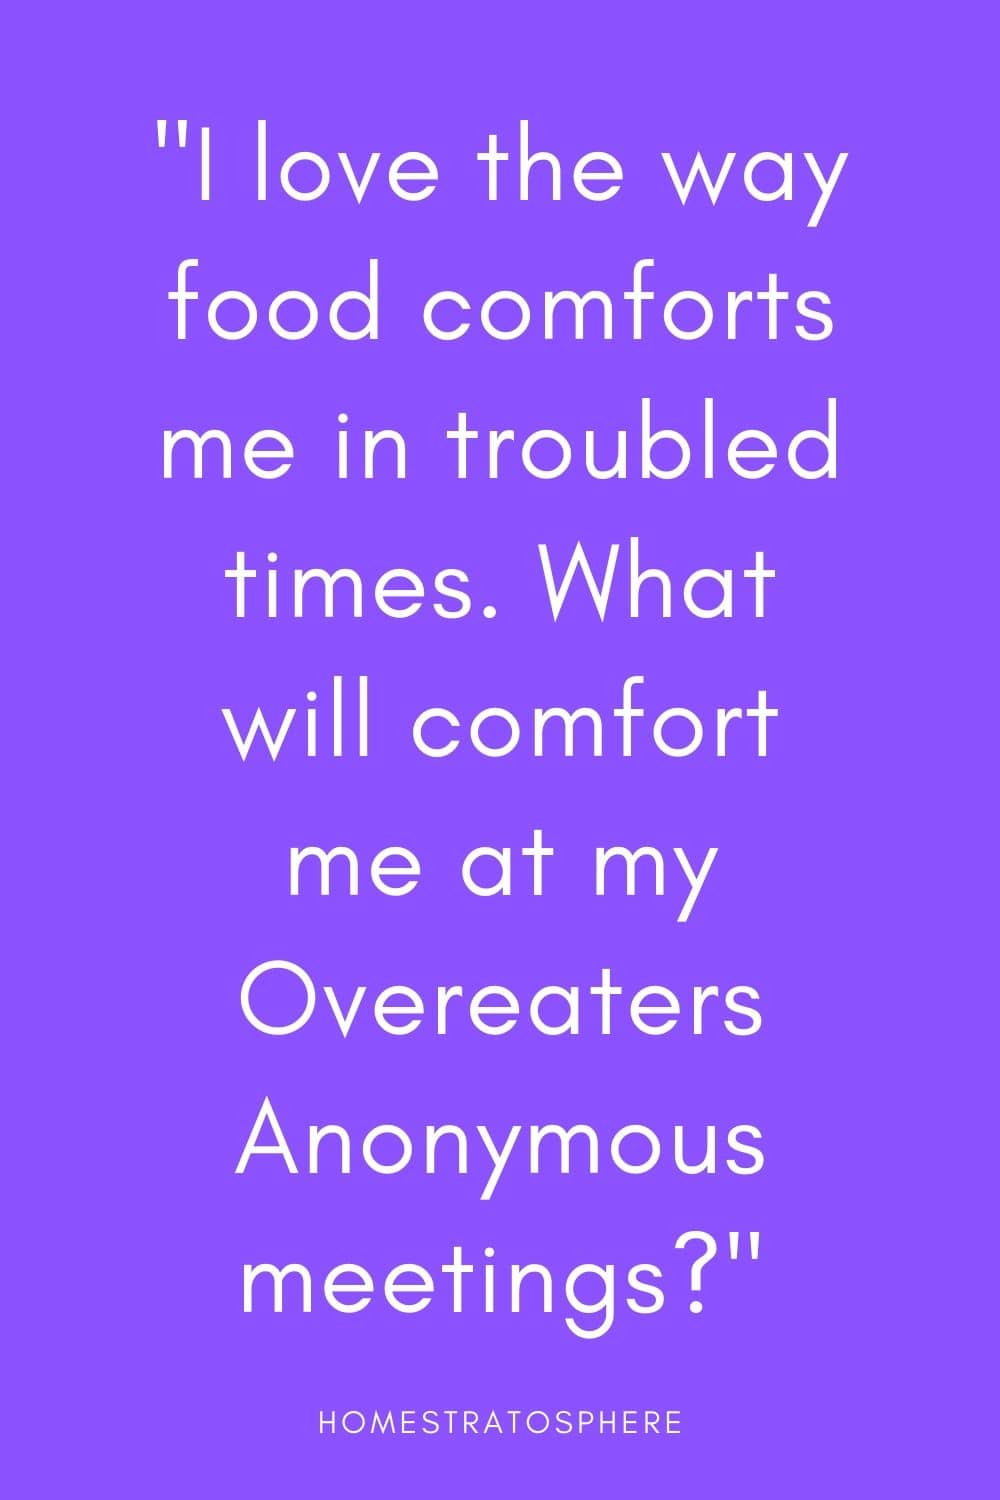 """I love the way food comforts me in troubled times. What will comfort me at my Overeaters Anonymous meetings?"""